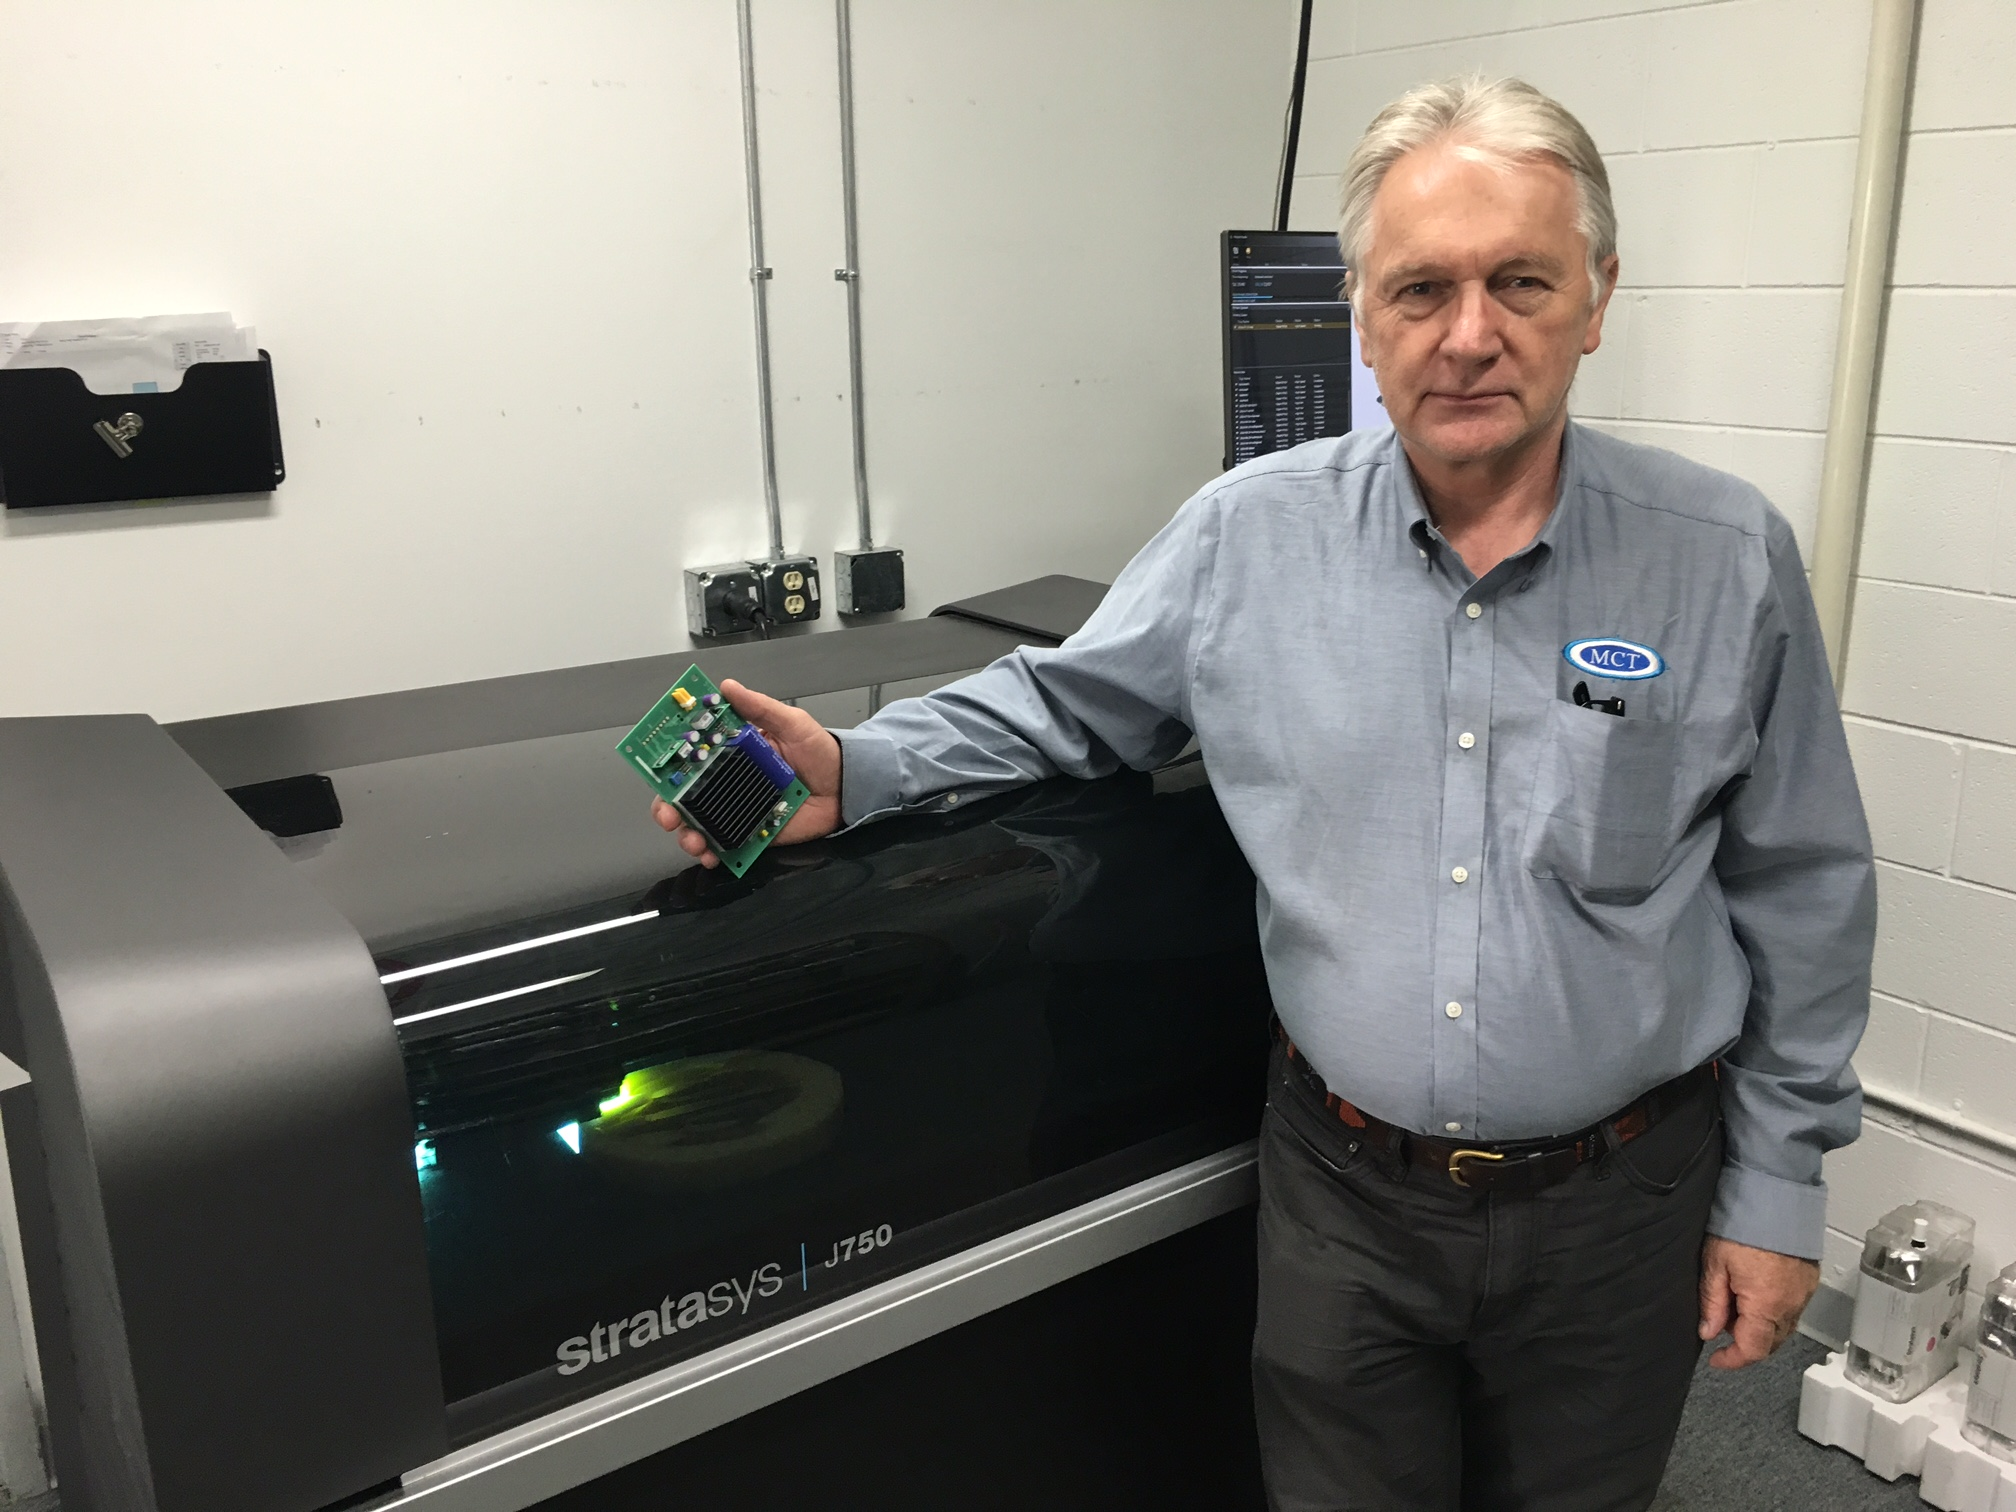 The J750 3D Printer is Amazing, But Where Can You Actually Use One?